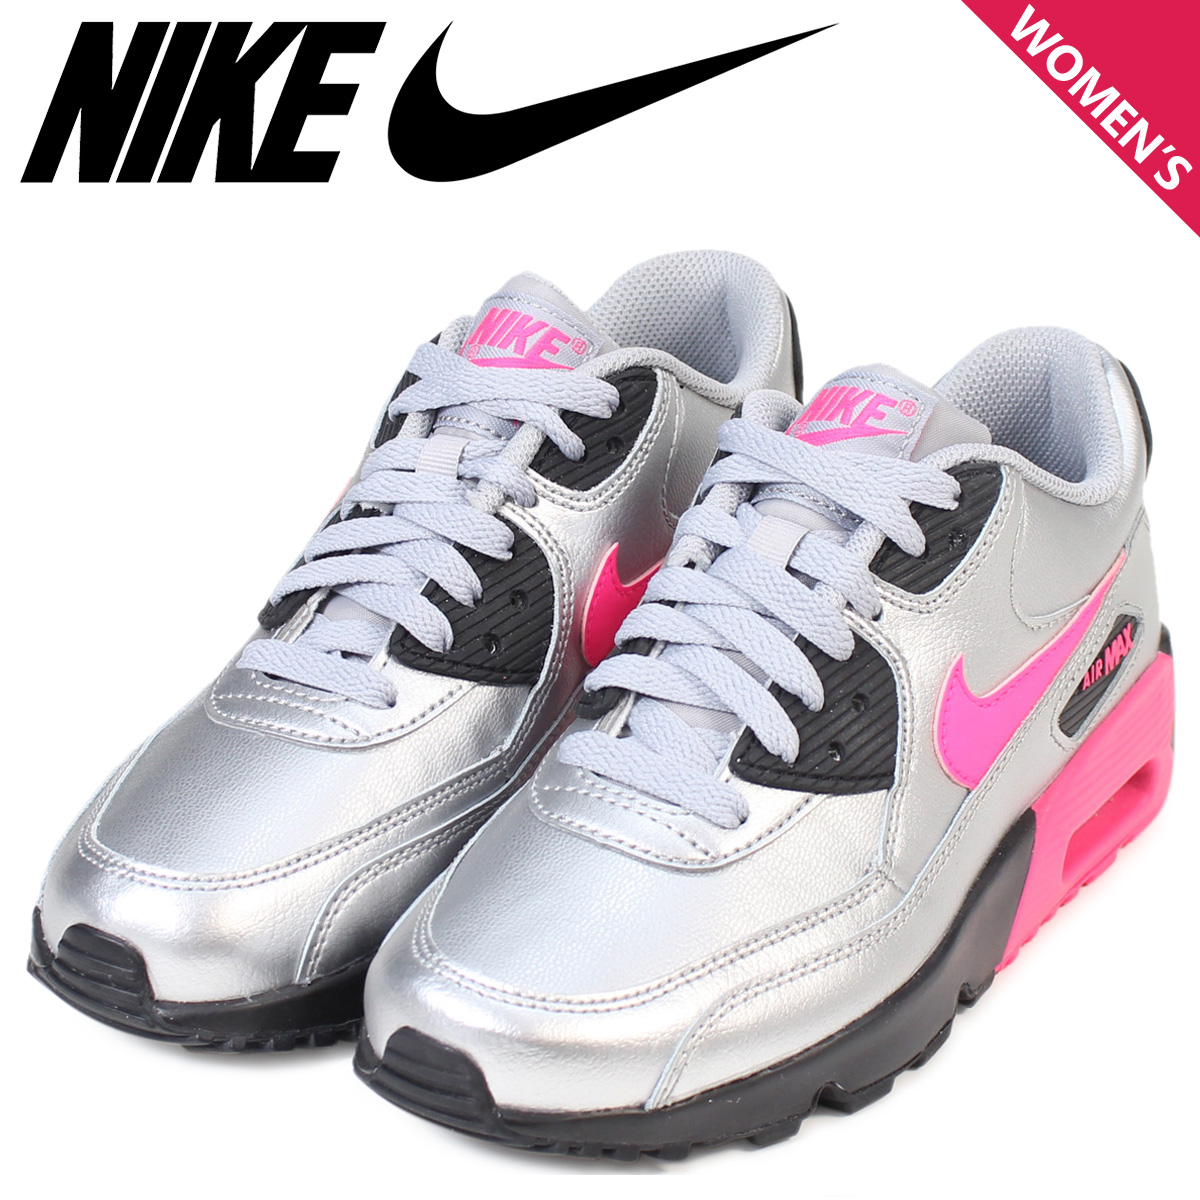 best website 9881e fe493  extreme popularity new work shoes of NIKE are received!